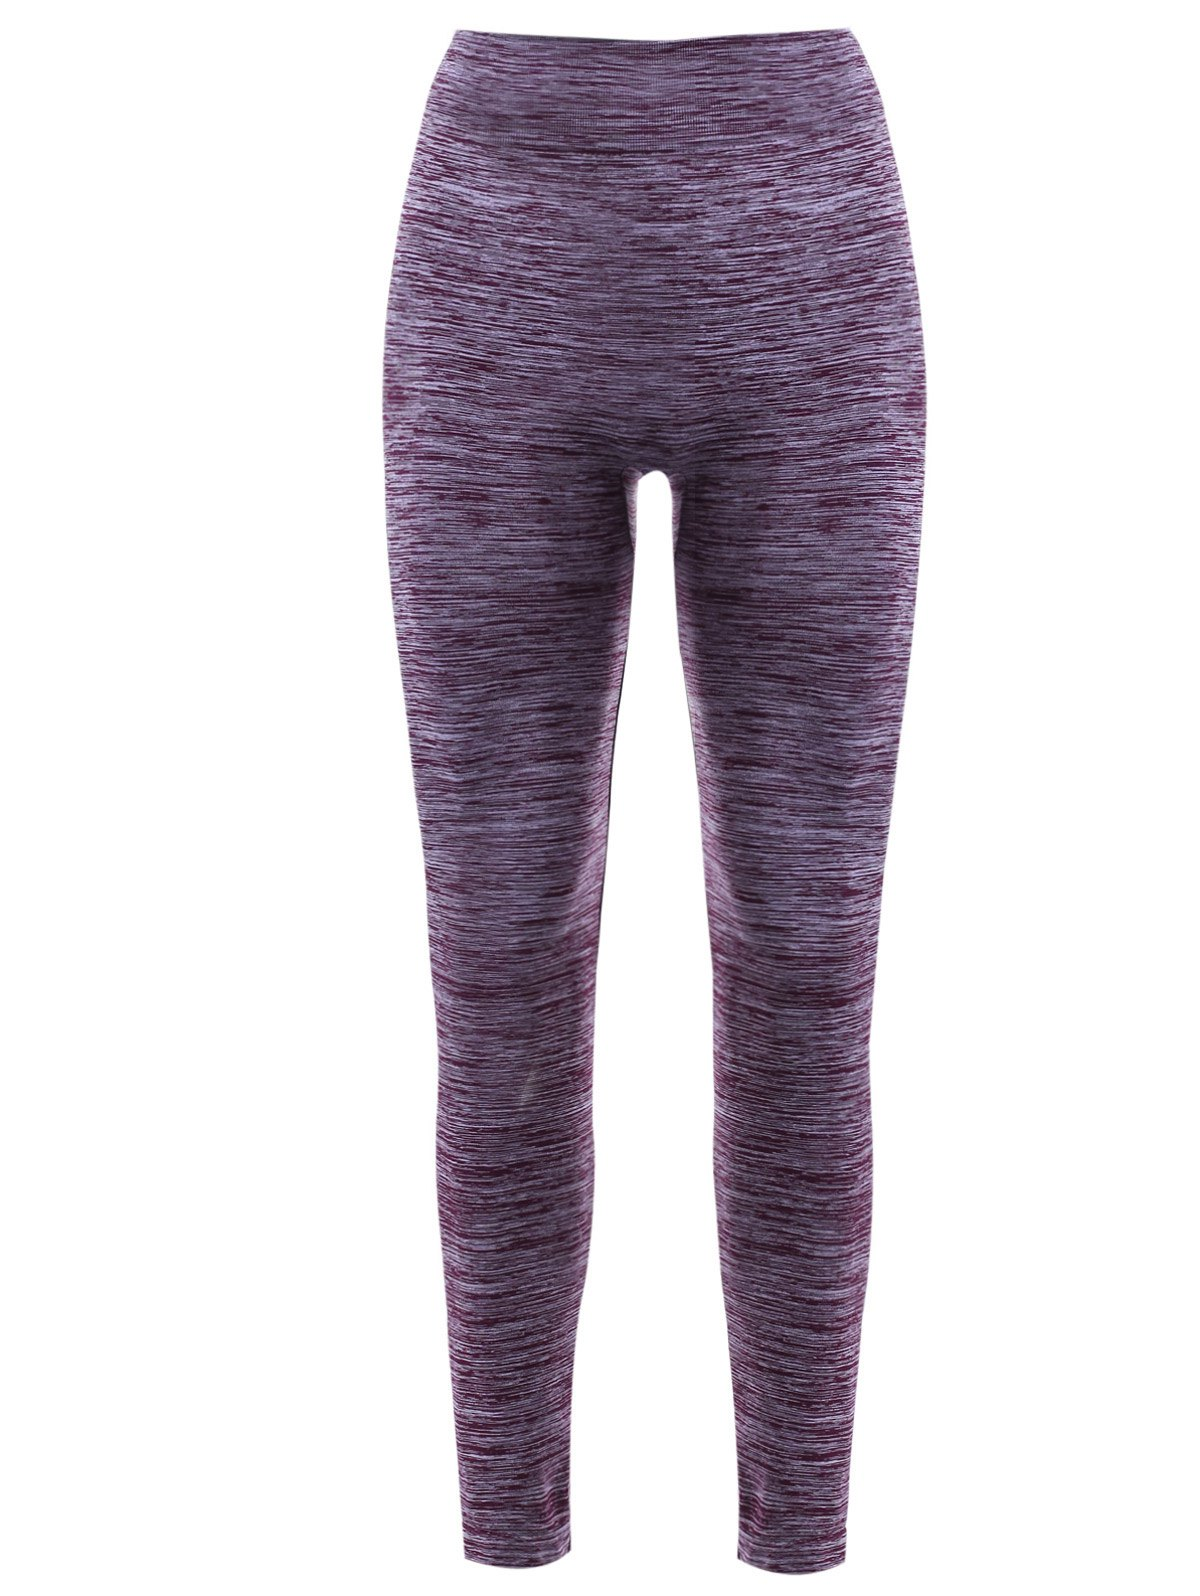 Elastic Waist Women's Sports Leggings - PURPLE XL